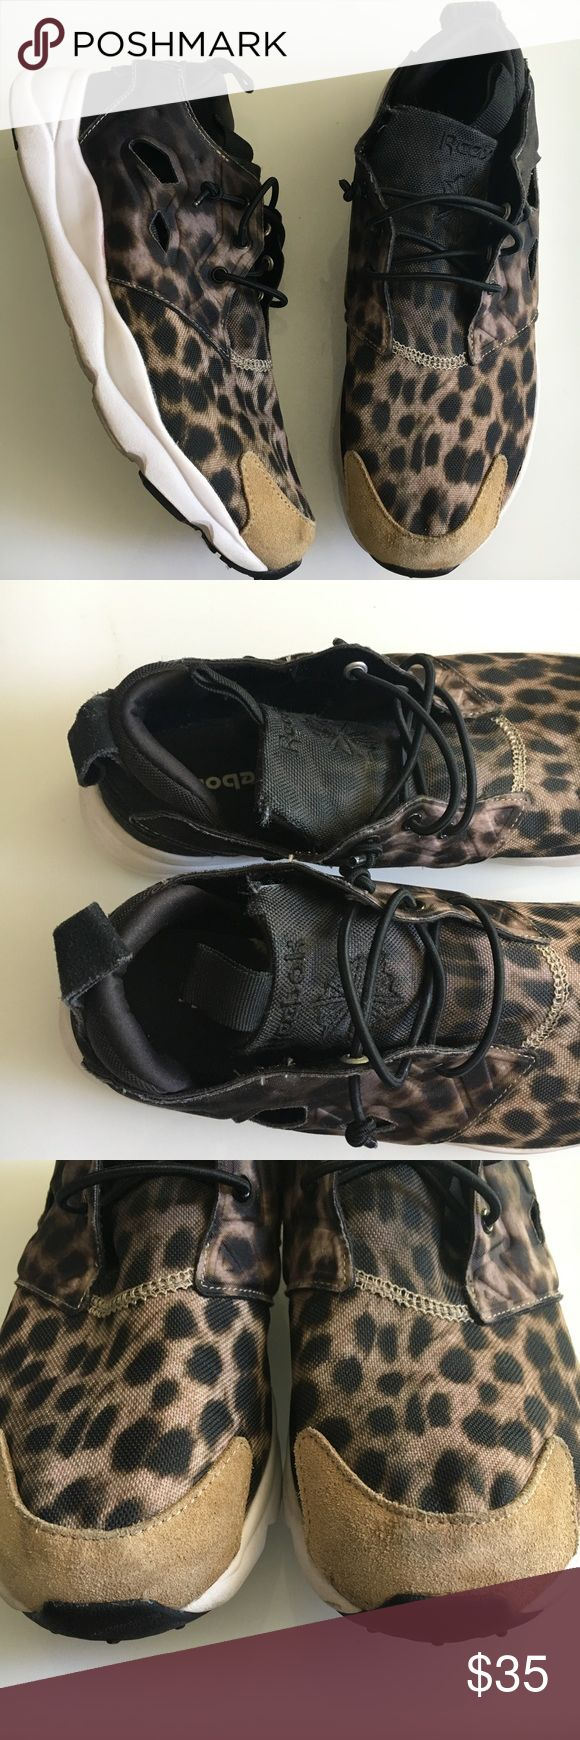 Reebok Leopard Furylite Recognized by its silhouette and unmistakable shape, the shoe is emphasized by an even more daring print: a gradient leopard pattern across the lightweight mesh and neoprene upper. A patch of tan suede can be found at the toe, while a Furylite midsole completes the look.  Brand: Reebok Size: 8 Condition: Used, but very good. Some signs of wear (see photos) Reebok Shoes Sneakers